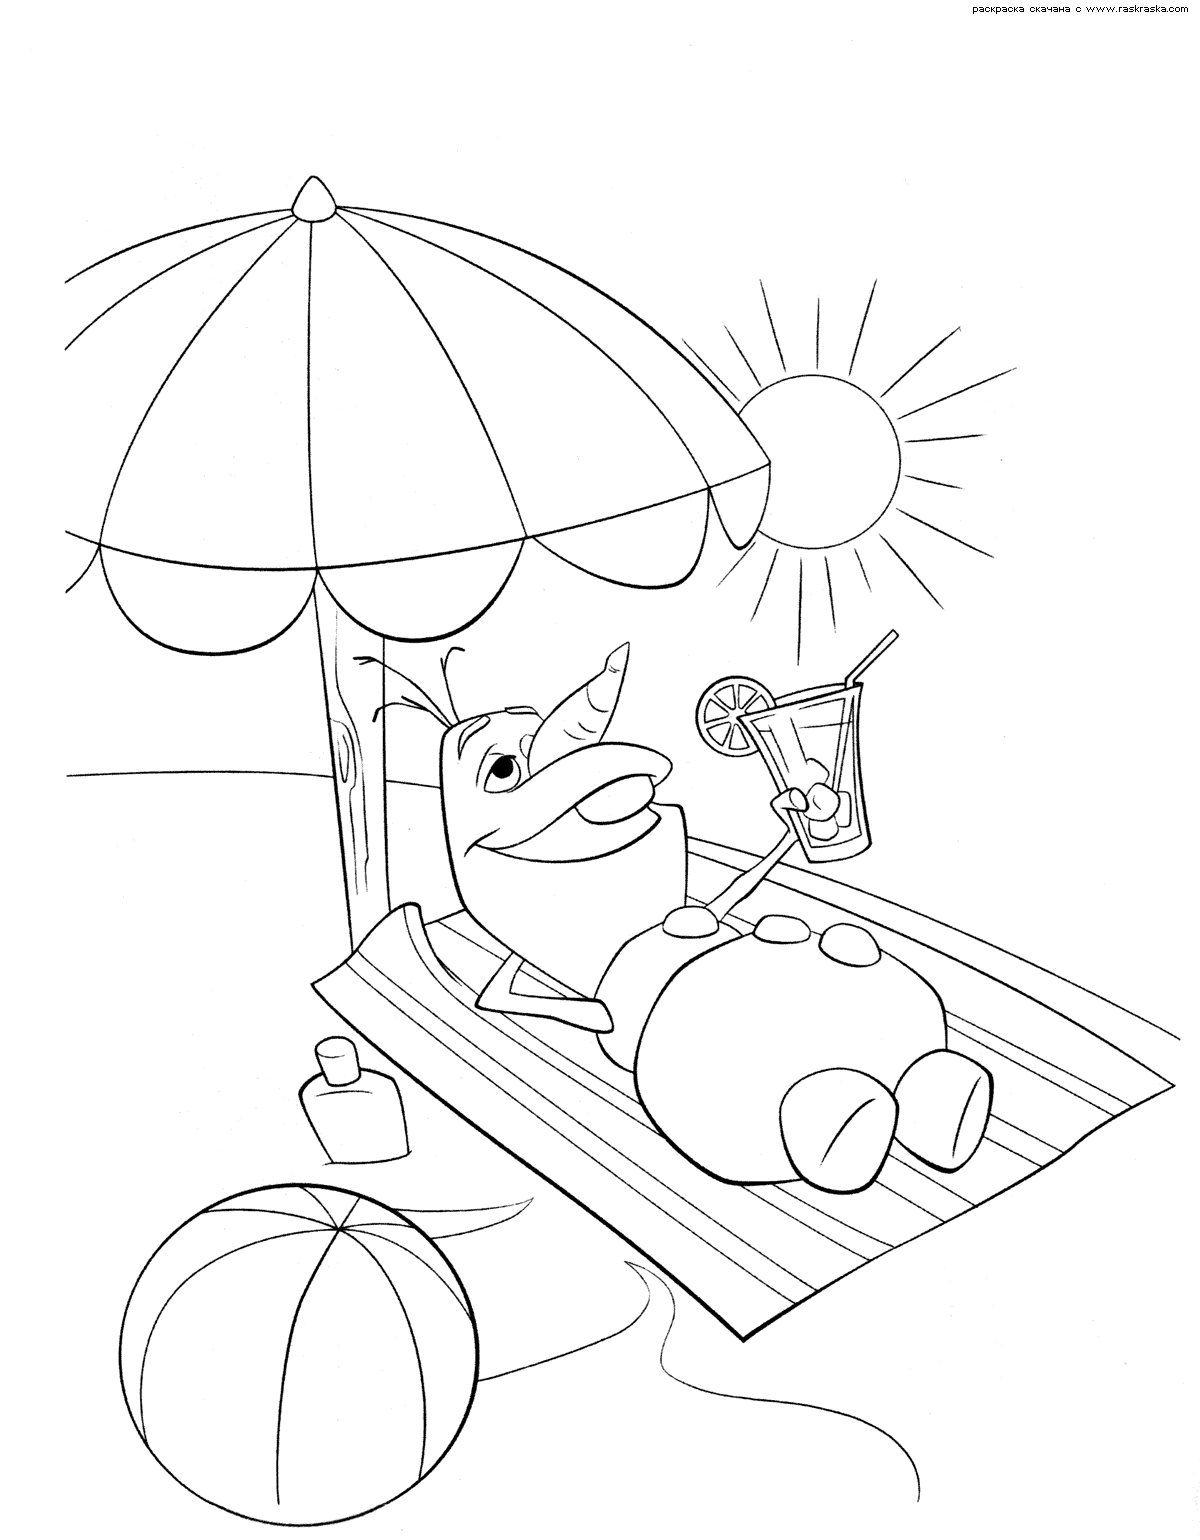 Olaf in Summer Coloring Pages Free coloring pages for kids